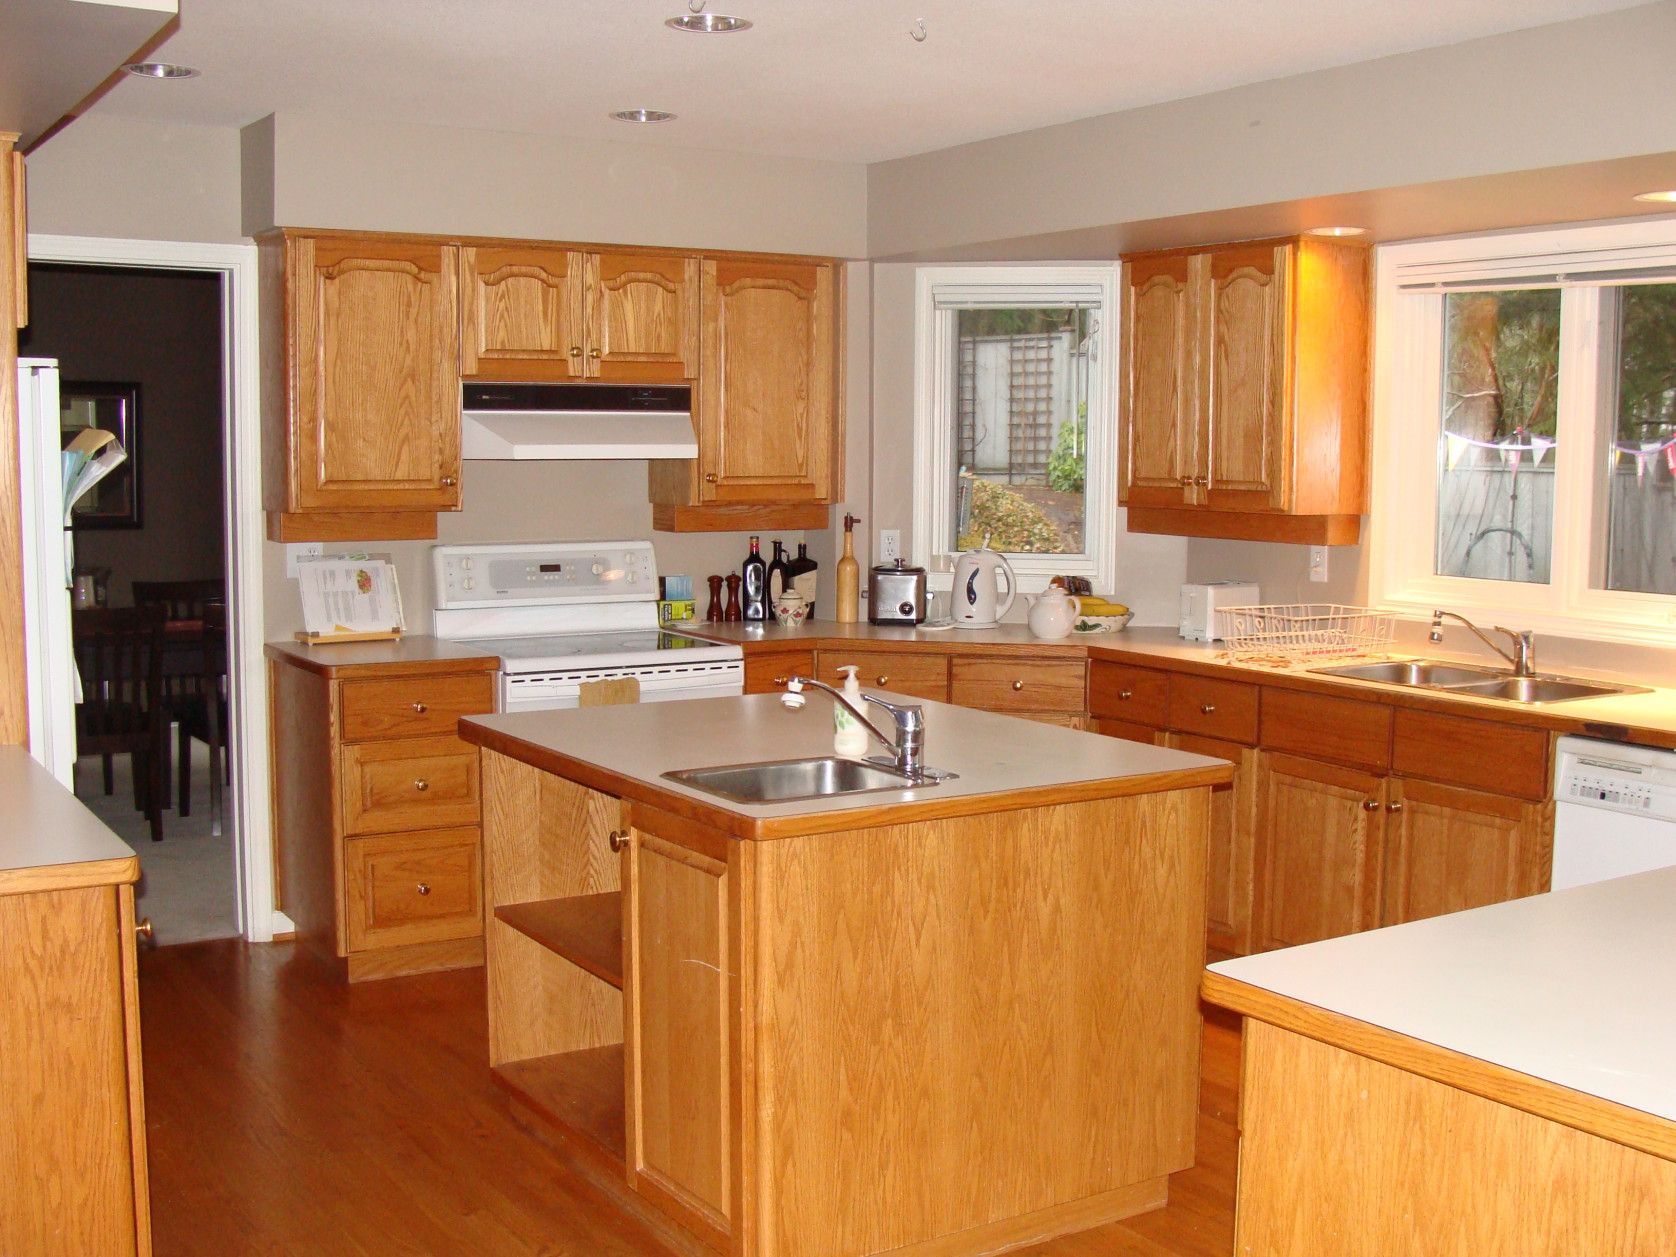 full ready custom cabinets made cabinet kitchen of phoenix large size online